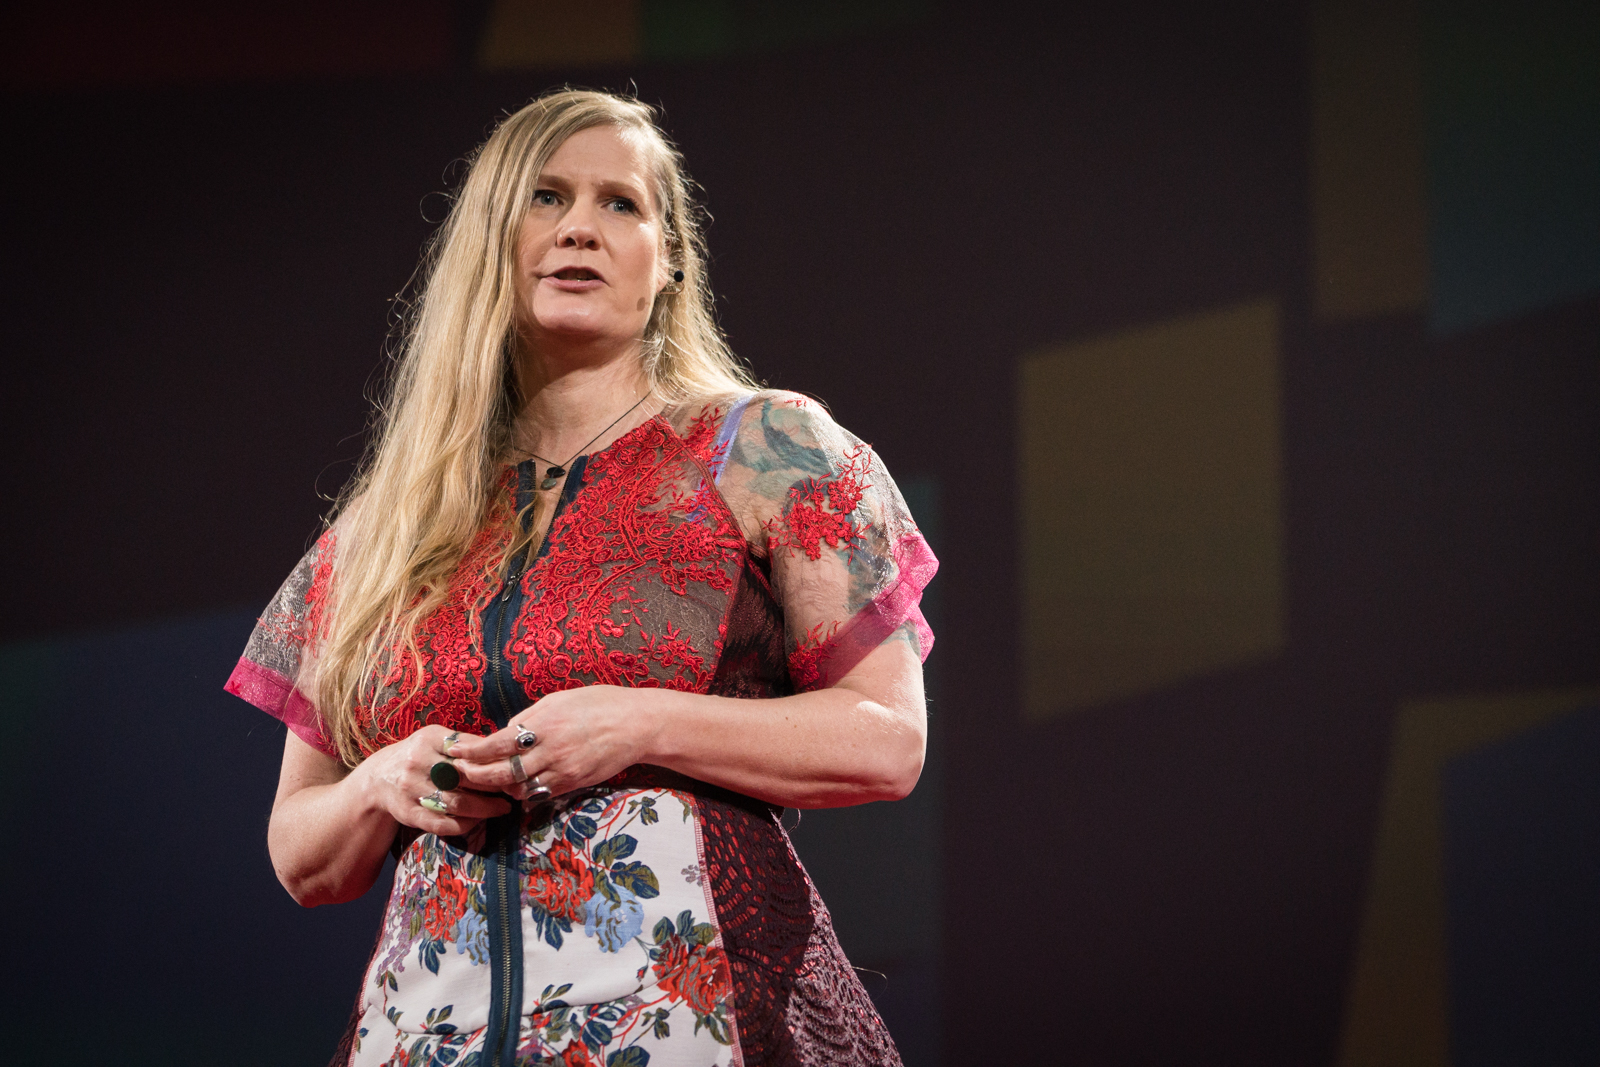 Lidia Yuknavitch speaks at TED2016 - Dream, February 15-19, 2016, Vancouver Convention Center, Vancouver, Canada. Photo: Bret Hartman / TED